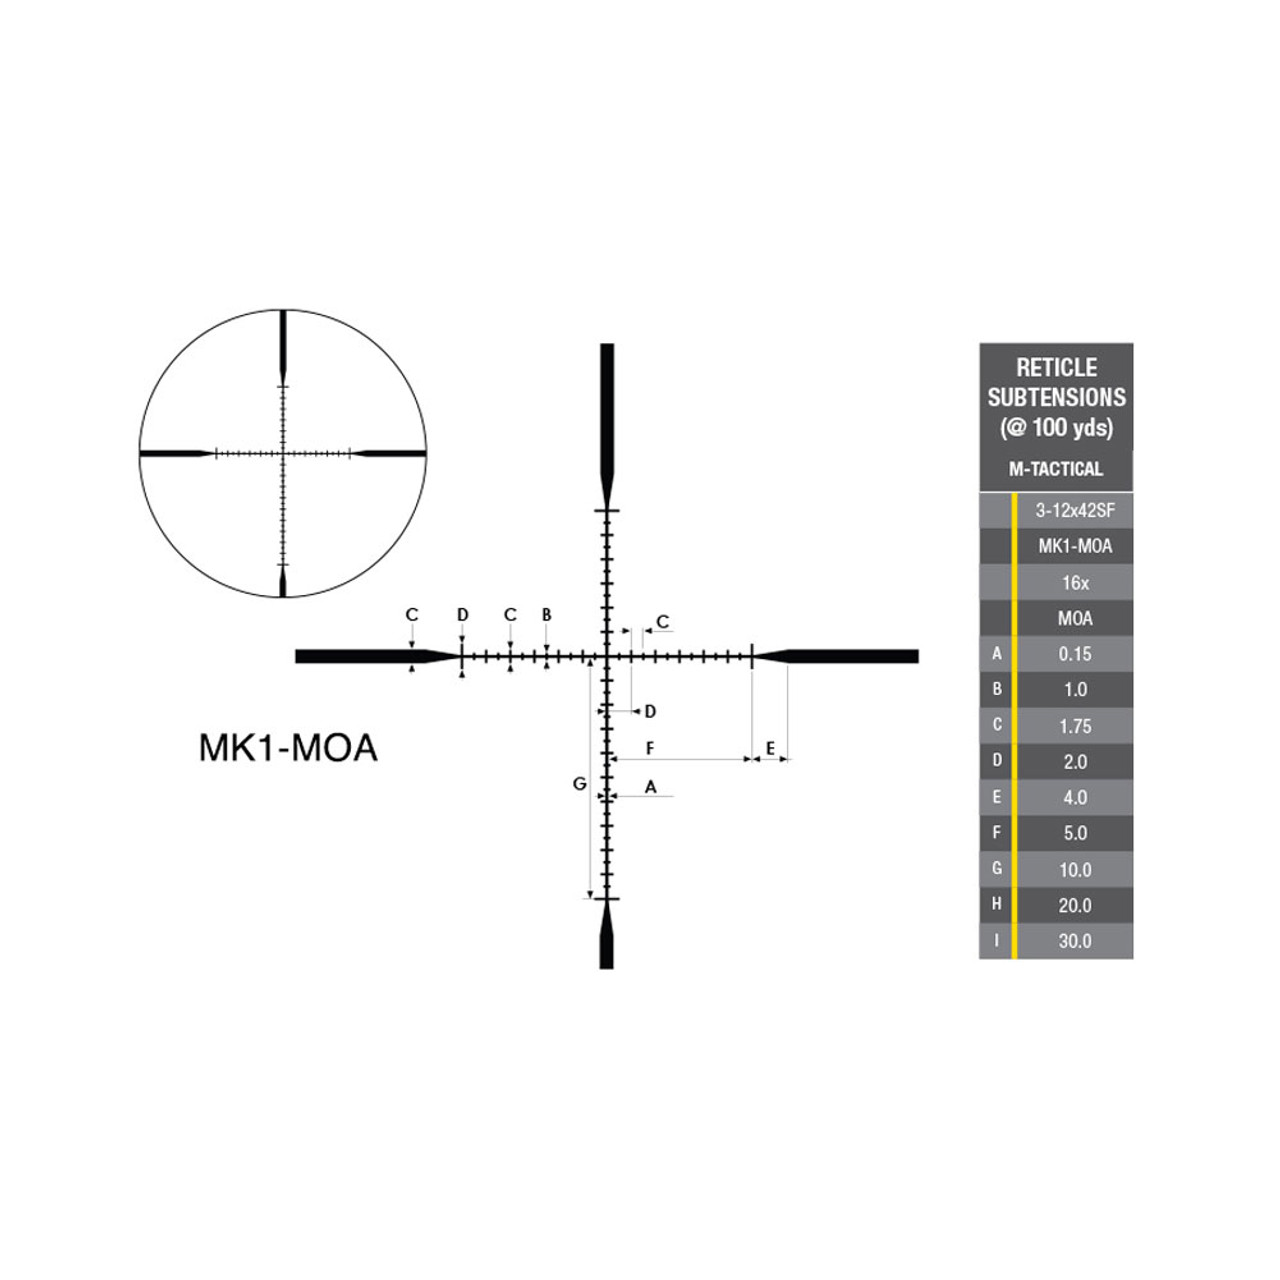 ar 15 schematic diagram scientific scope diagram m4 rifle parts diagram bolt [ 1001 x 1001 Pixel ]